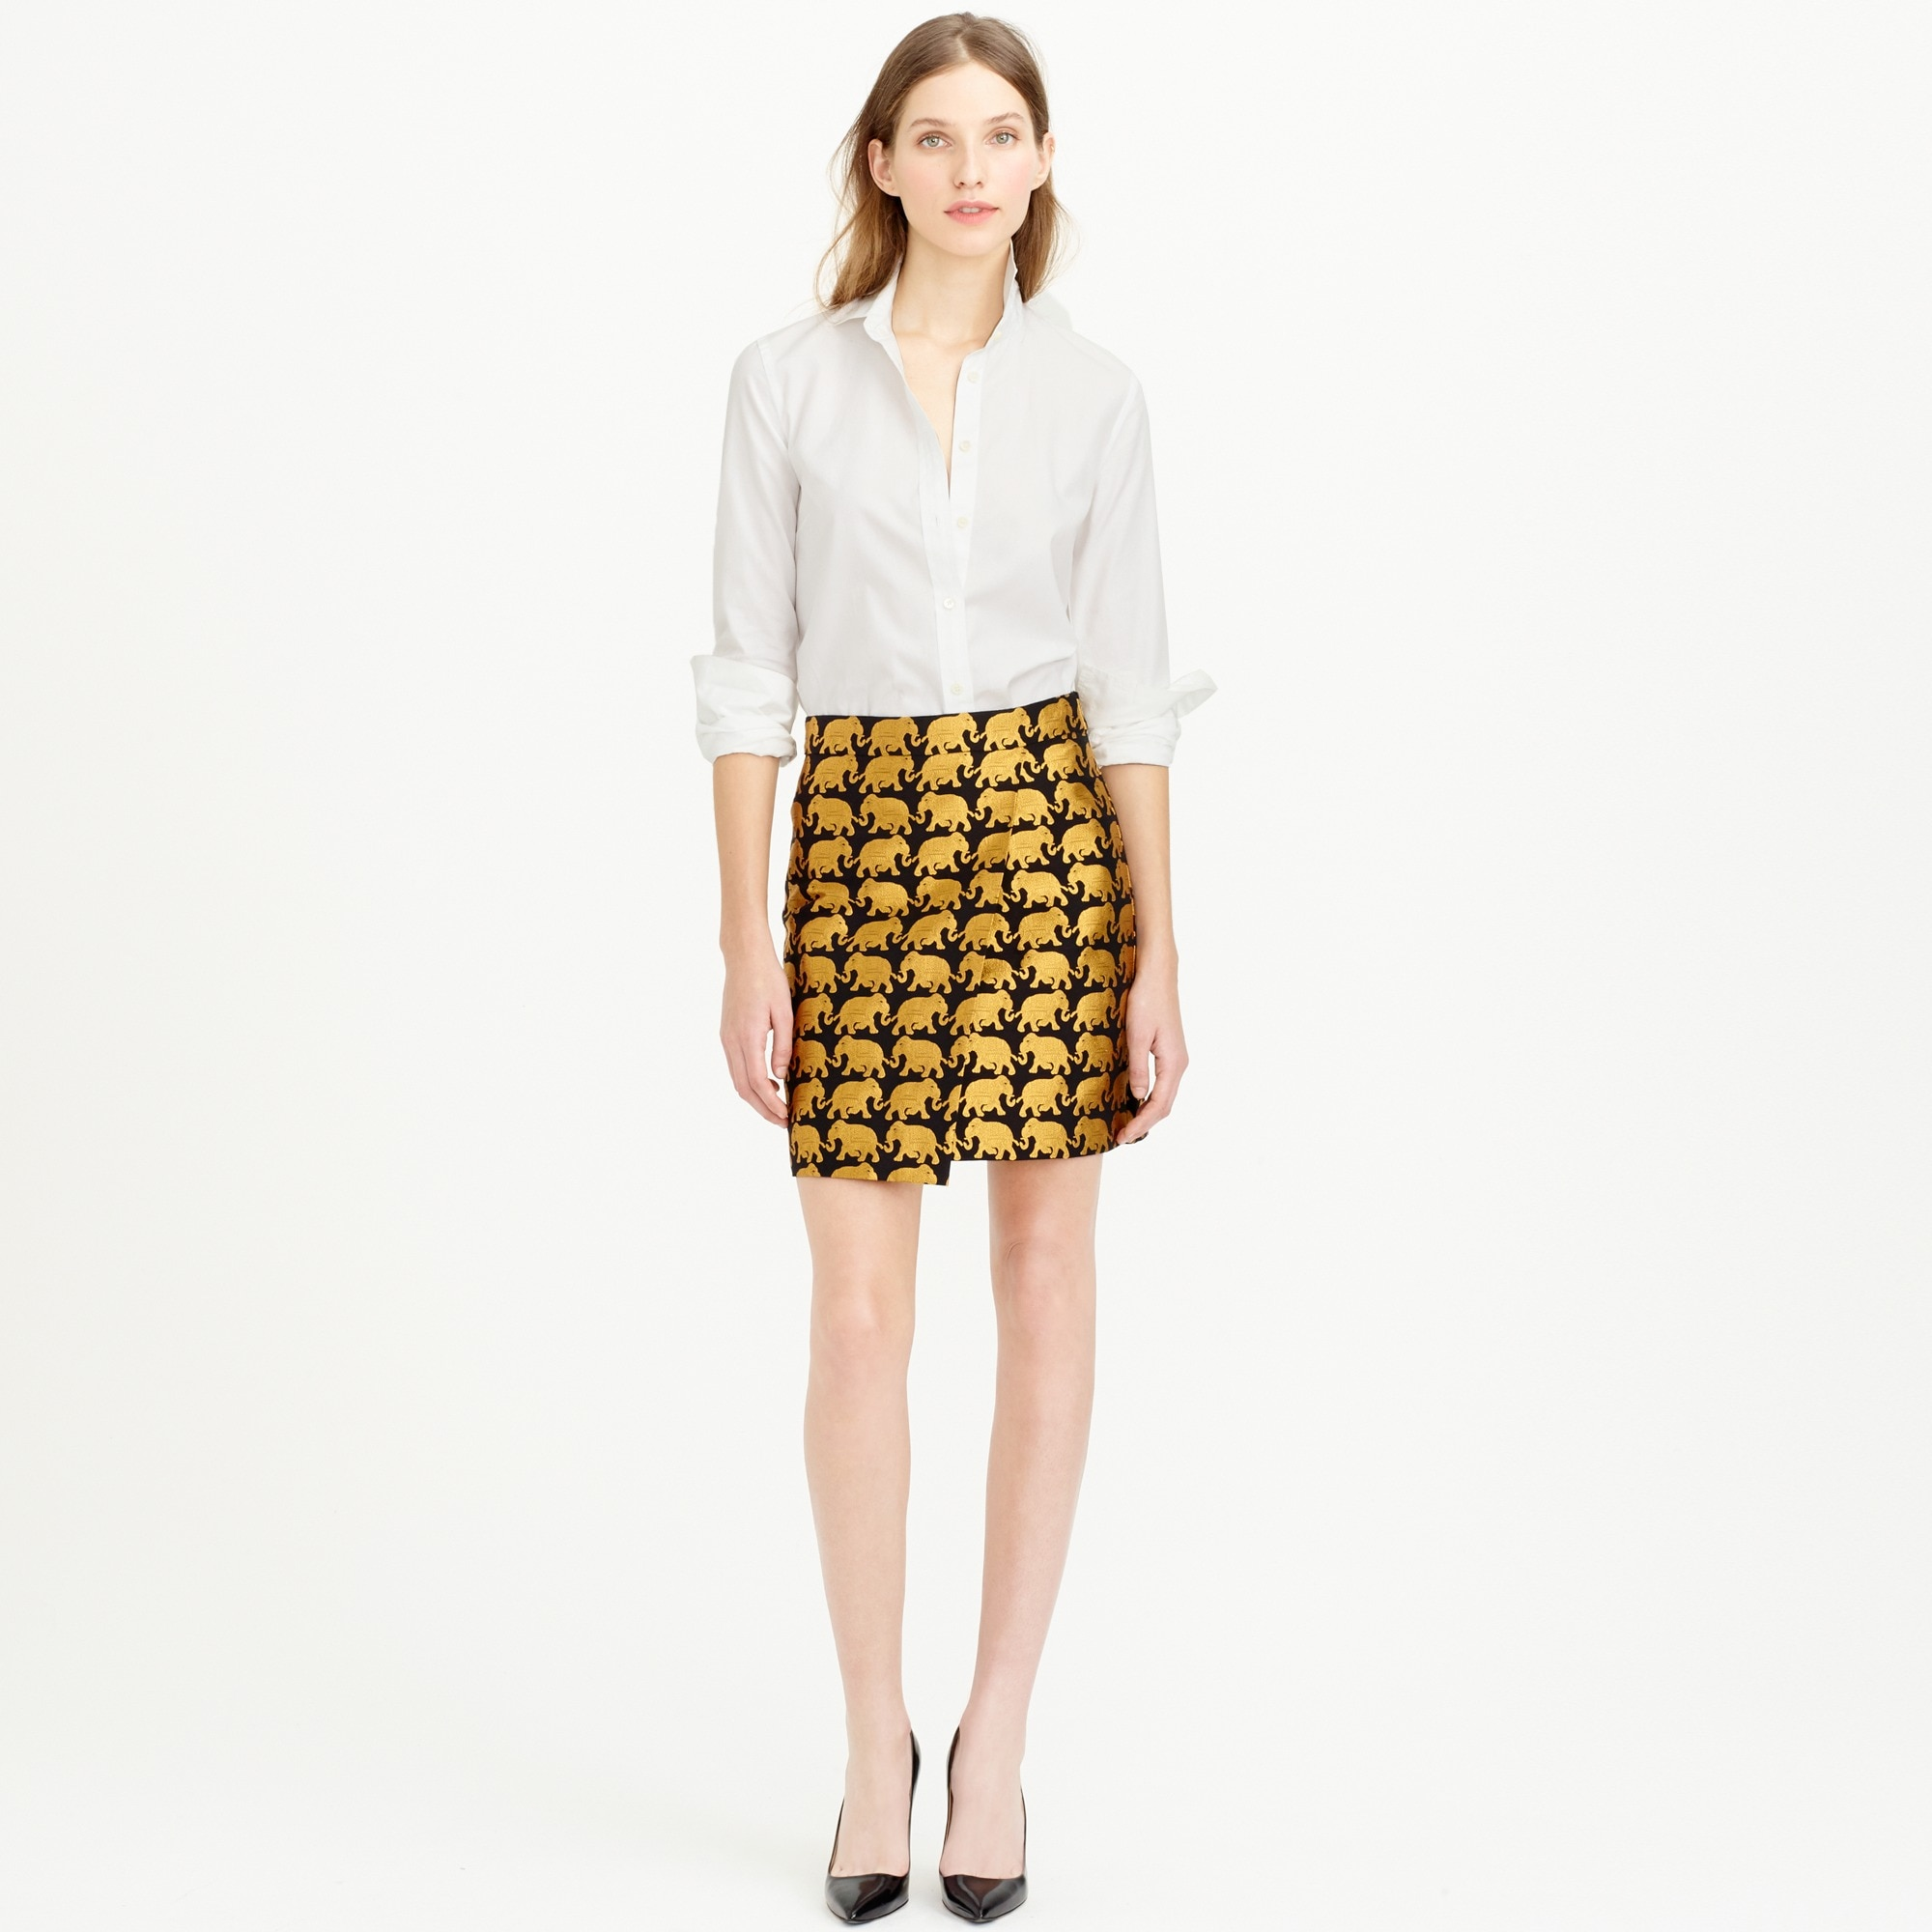 j crew origami skirt review